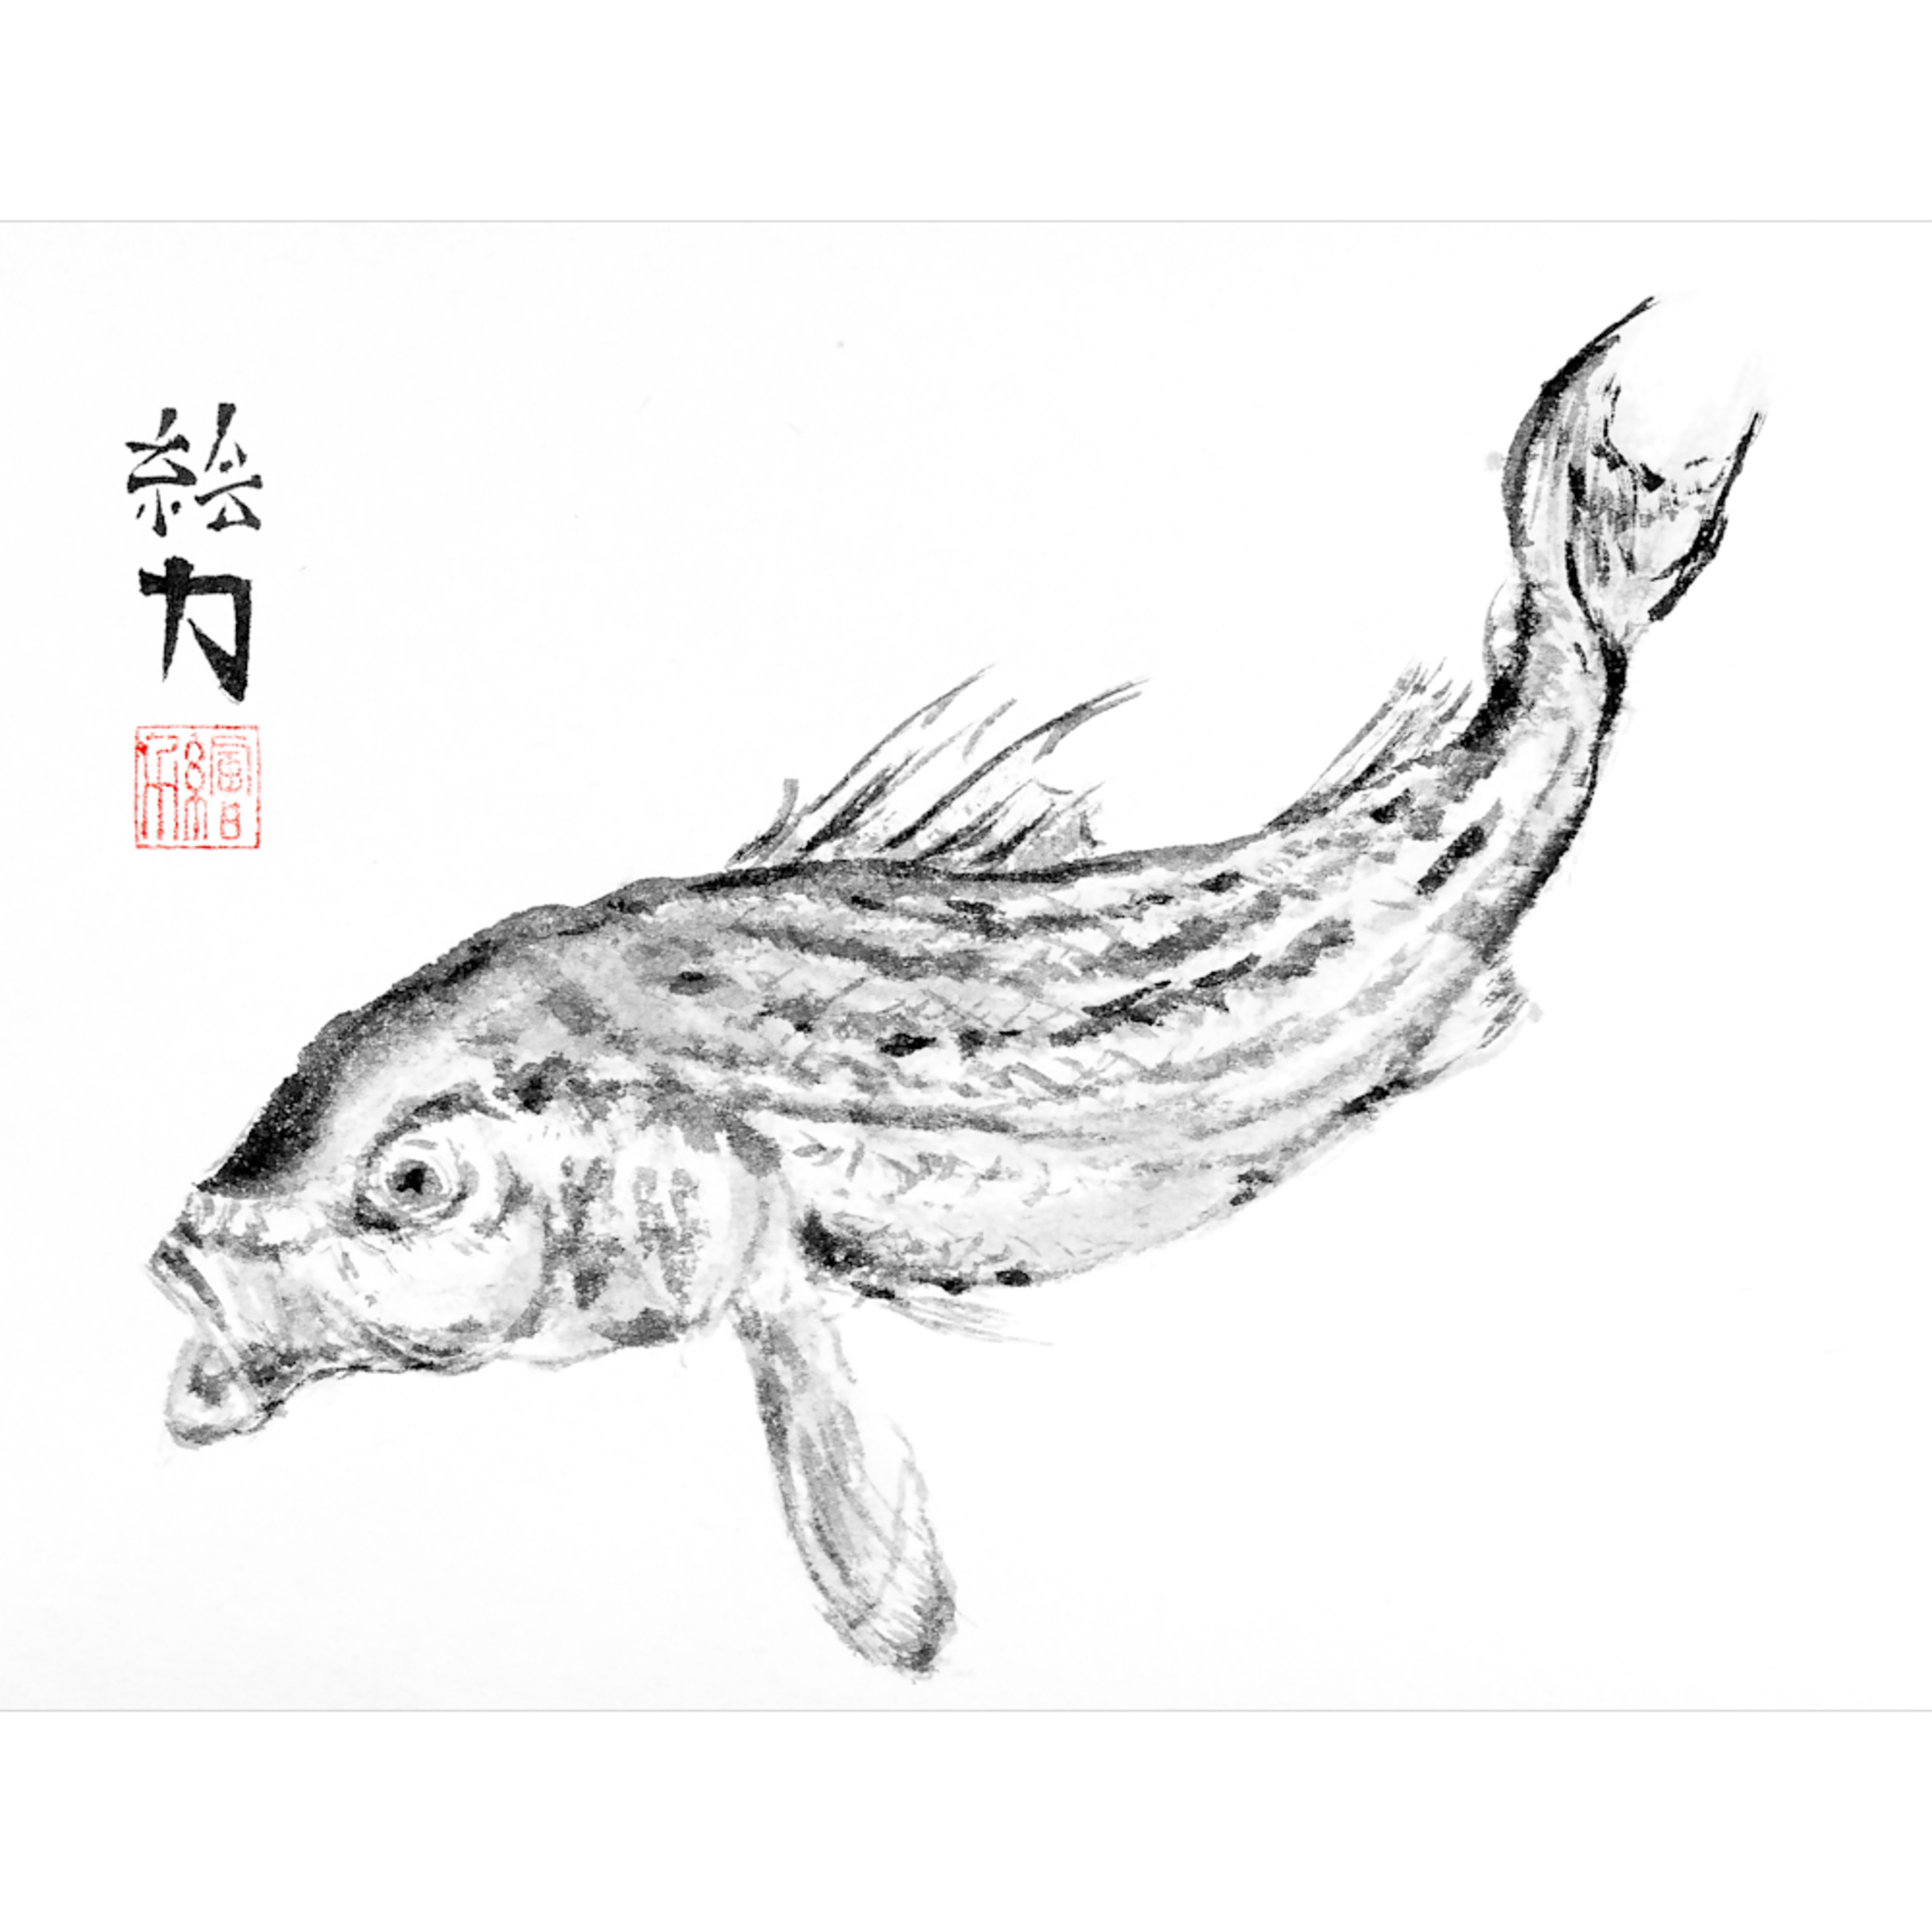 Hombretheartist sumie fish 1 forprint 091120 bpyyeq